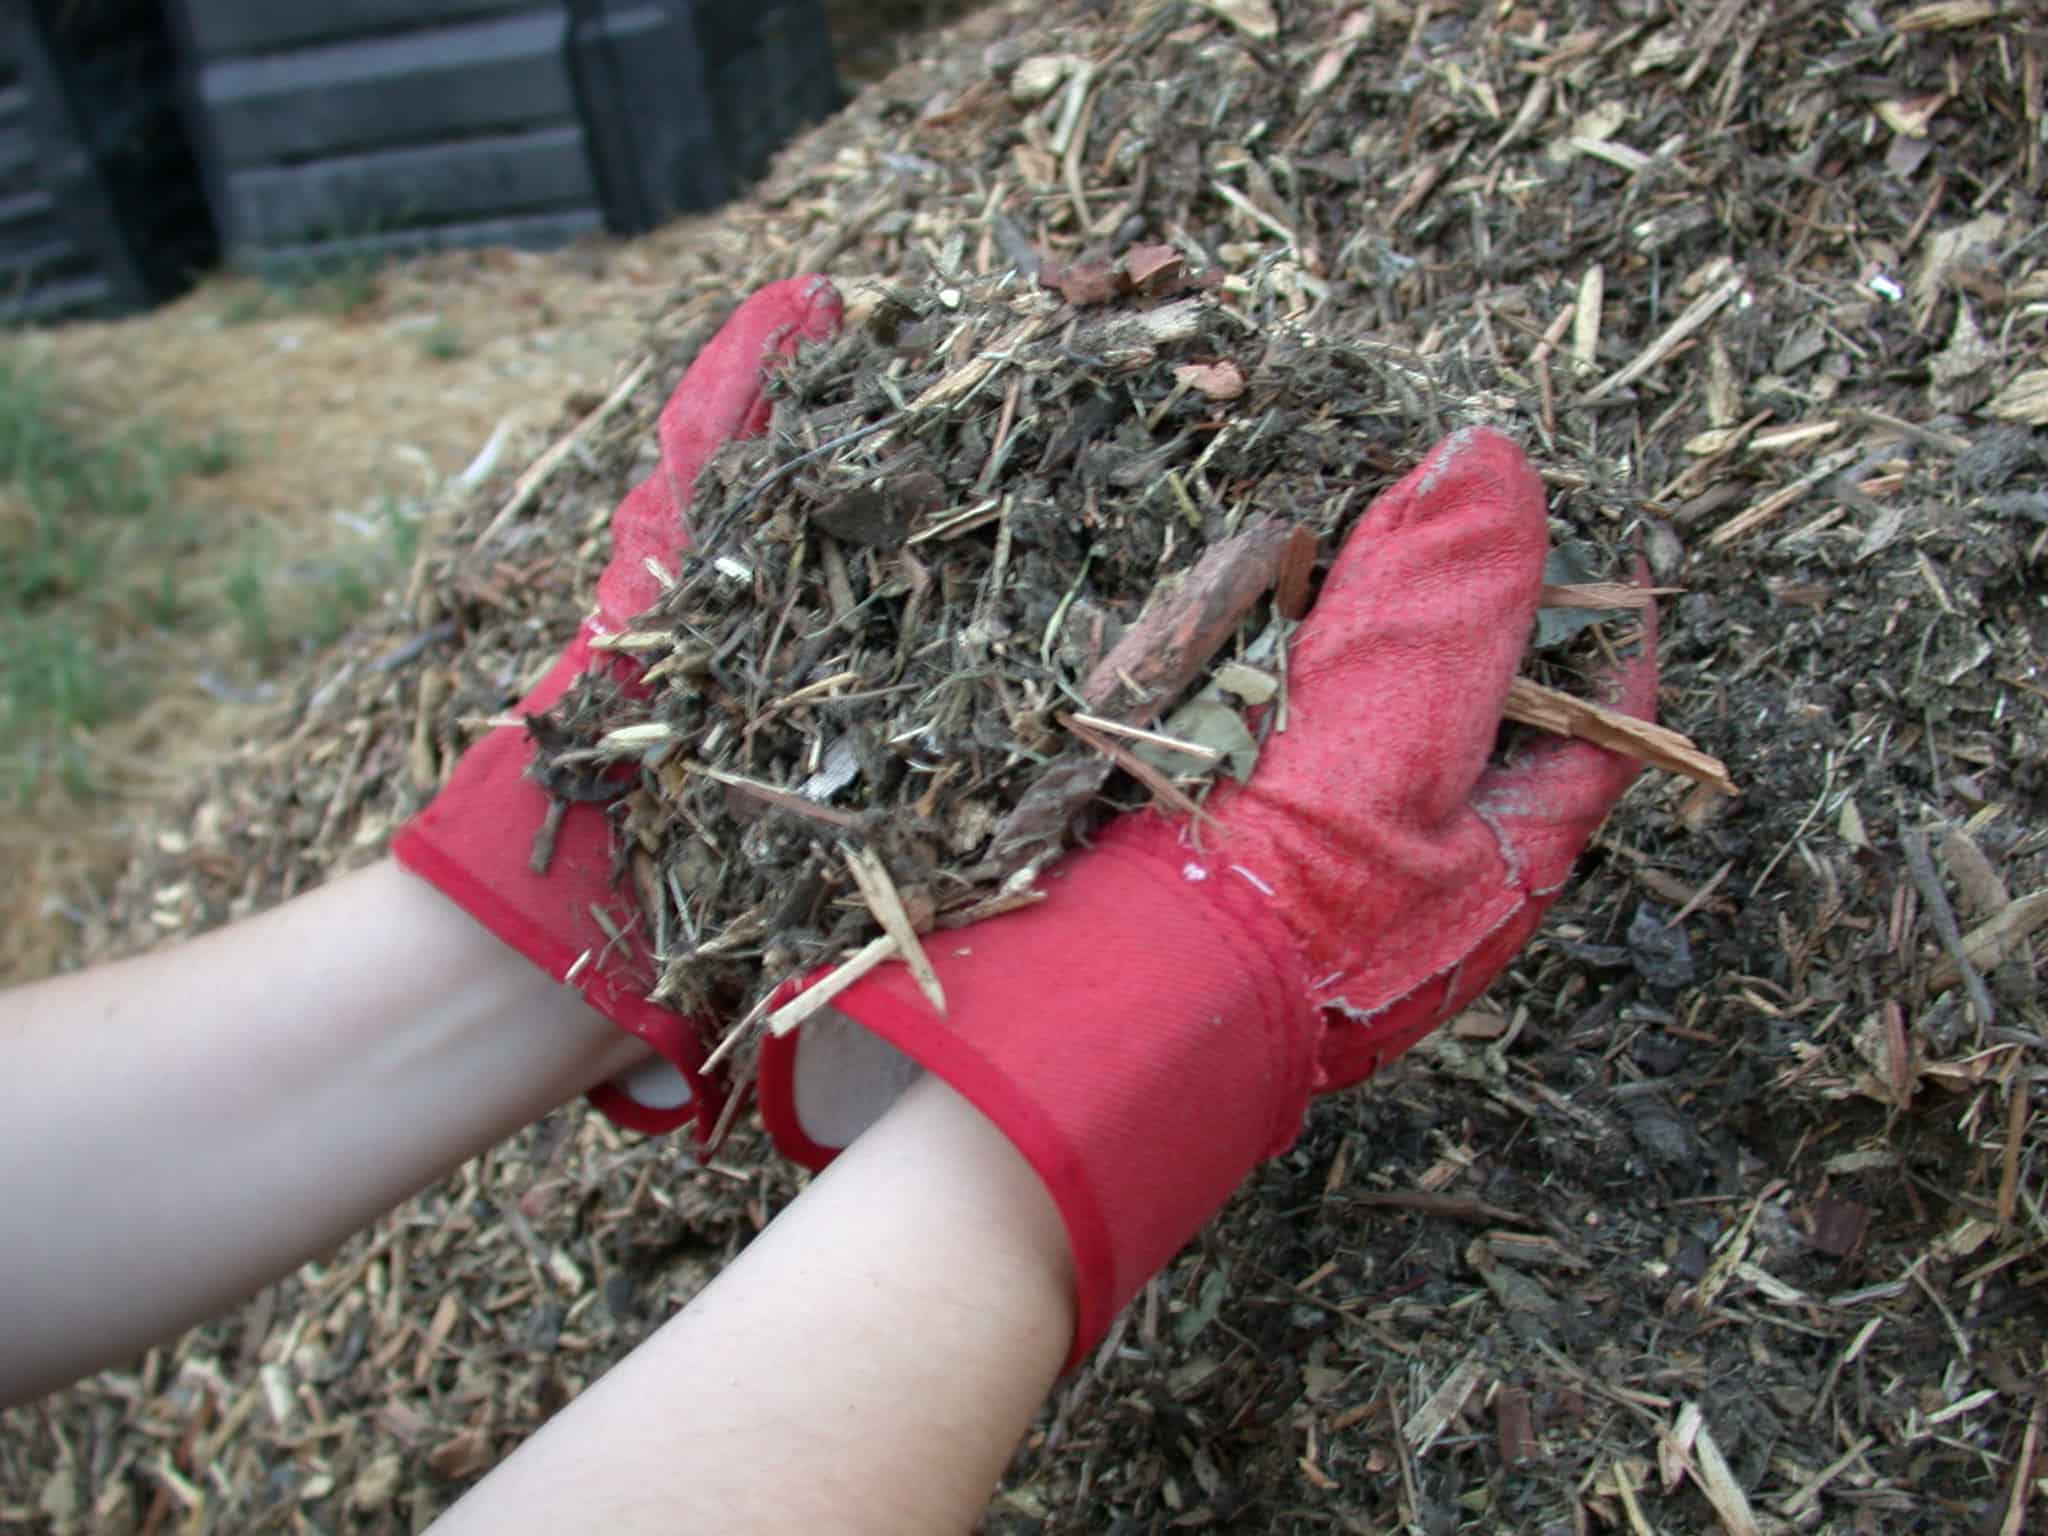 Buy Mulch Online for Garden on Amazon